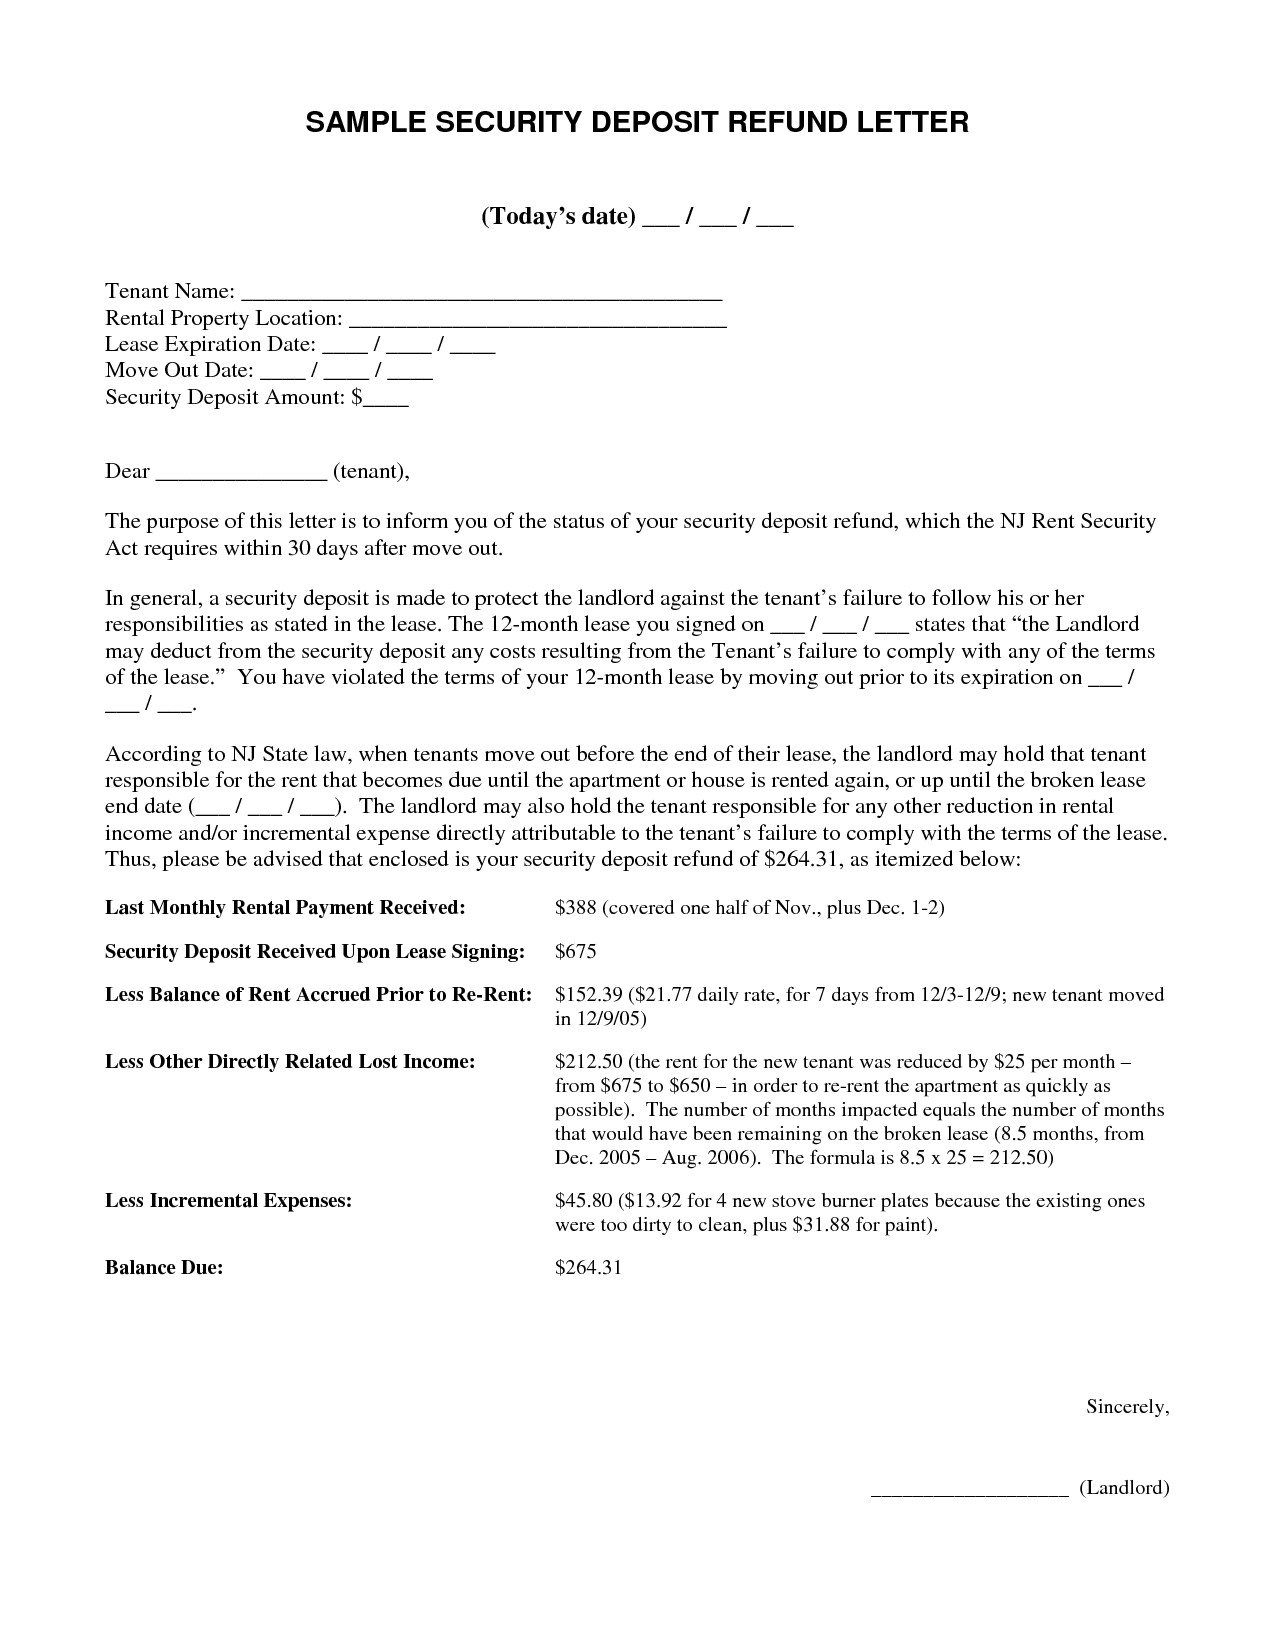 Certificate Of Insurance Request Letter Template Examples ...